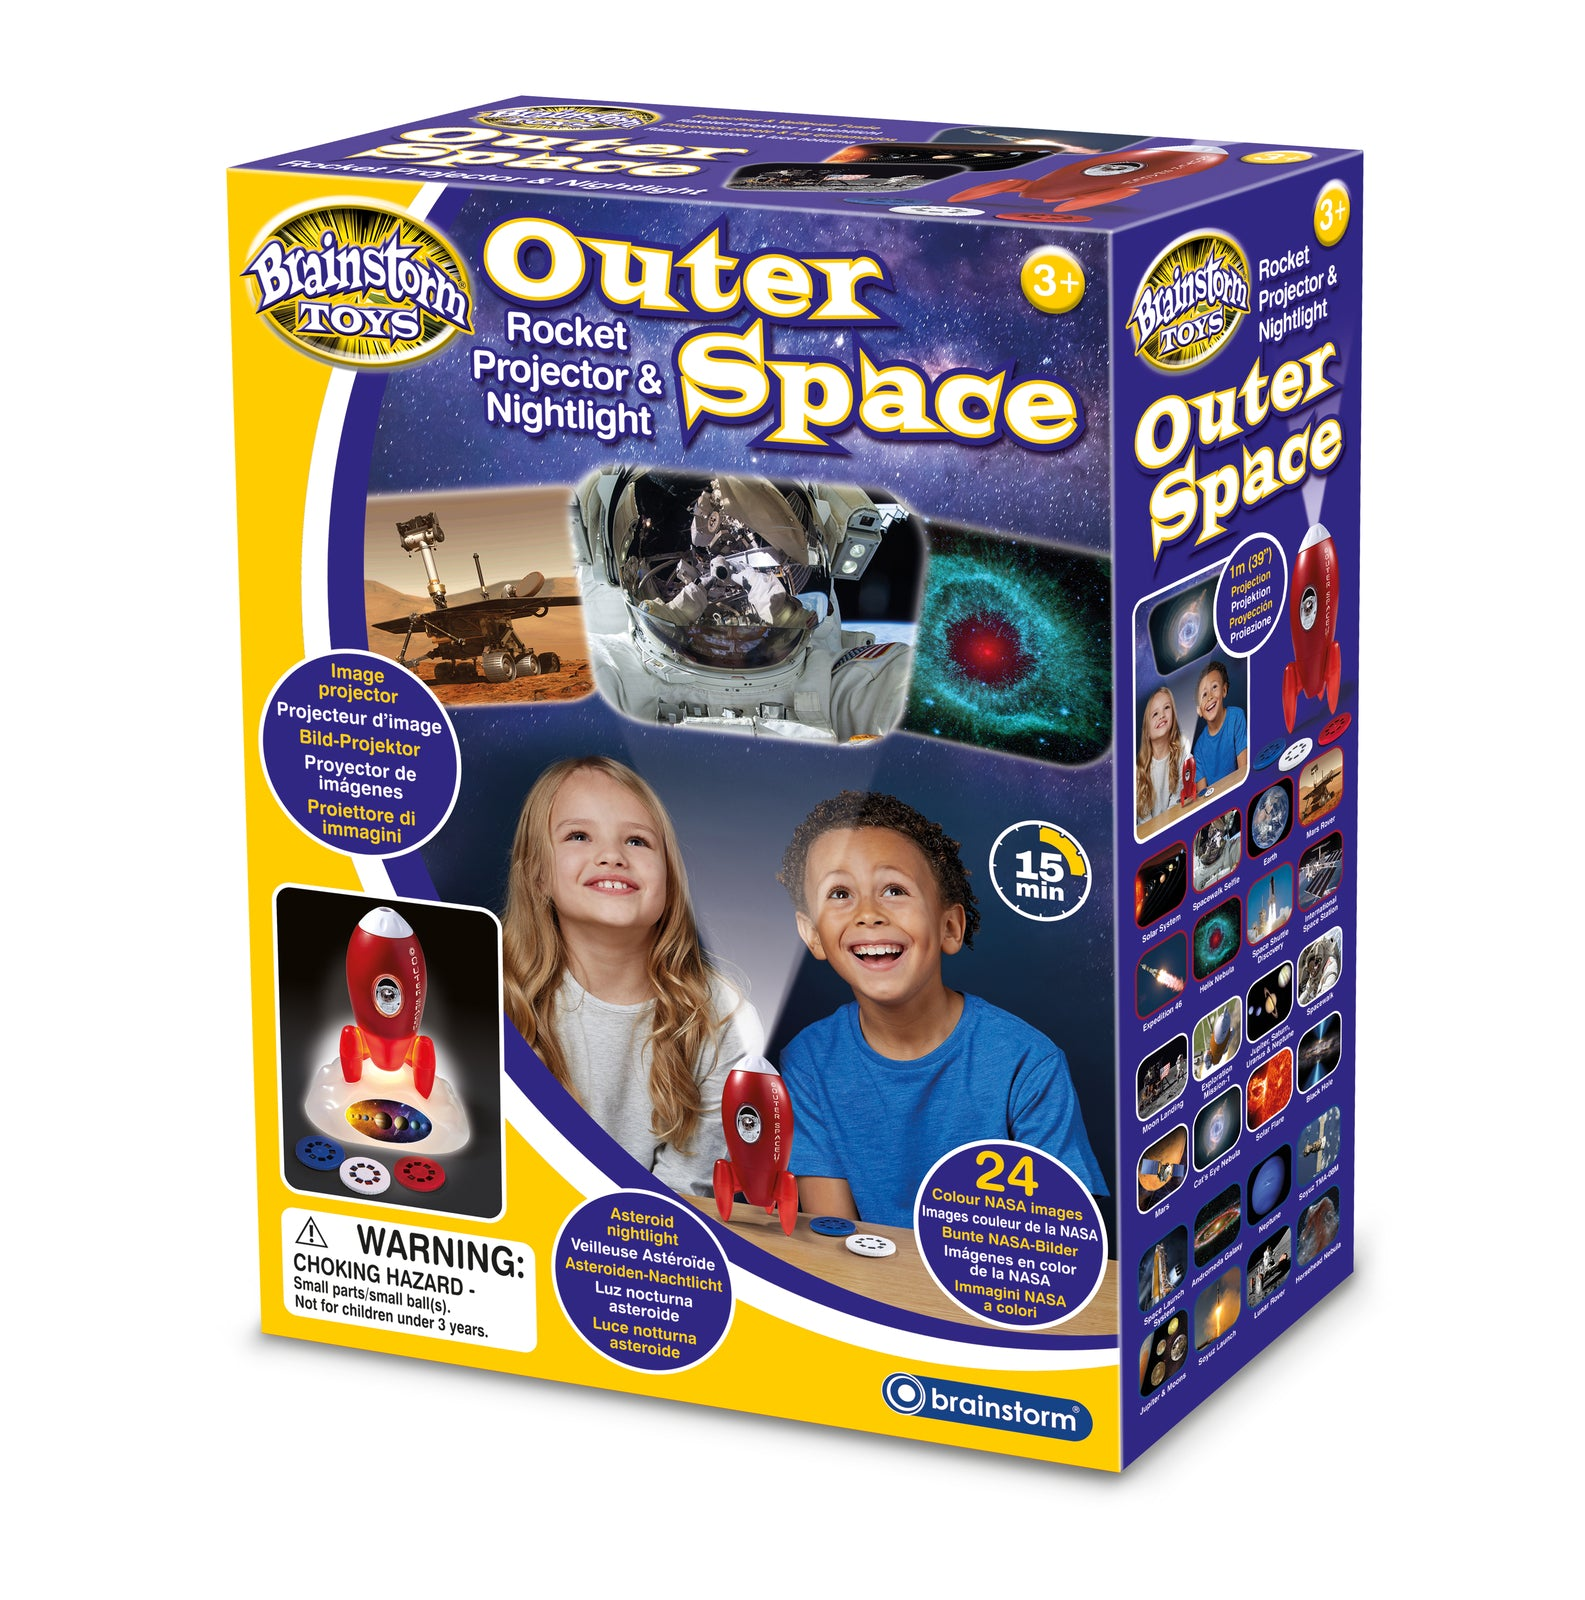 Brainstorm Toys: Outer Space Rocket Projector & Nightlight